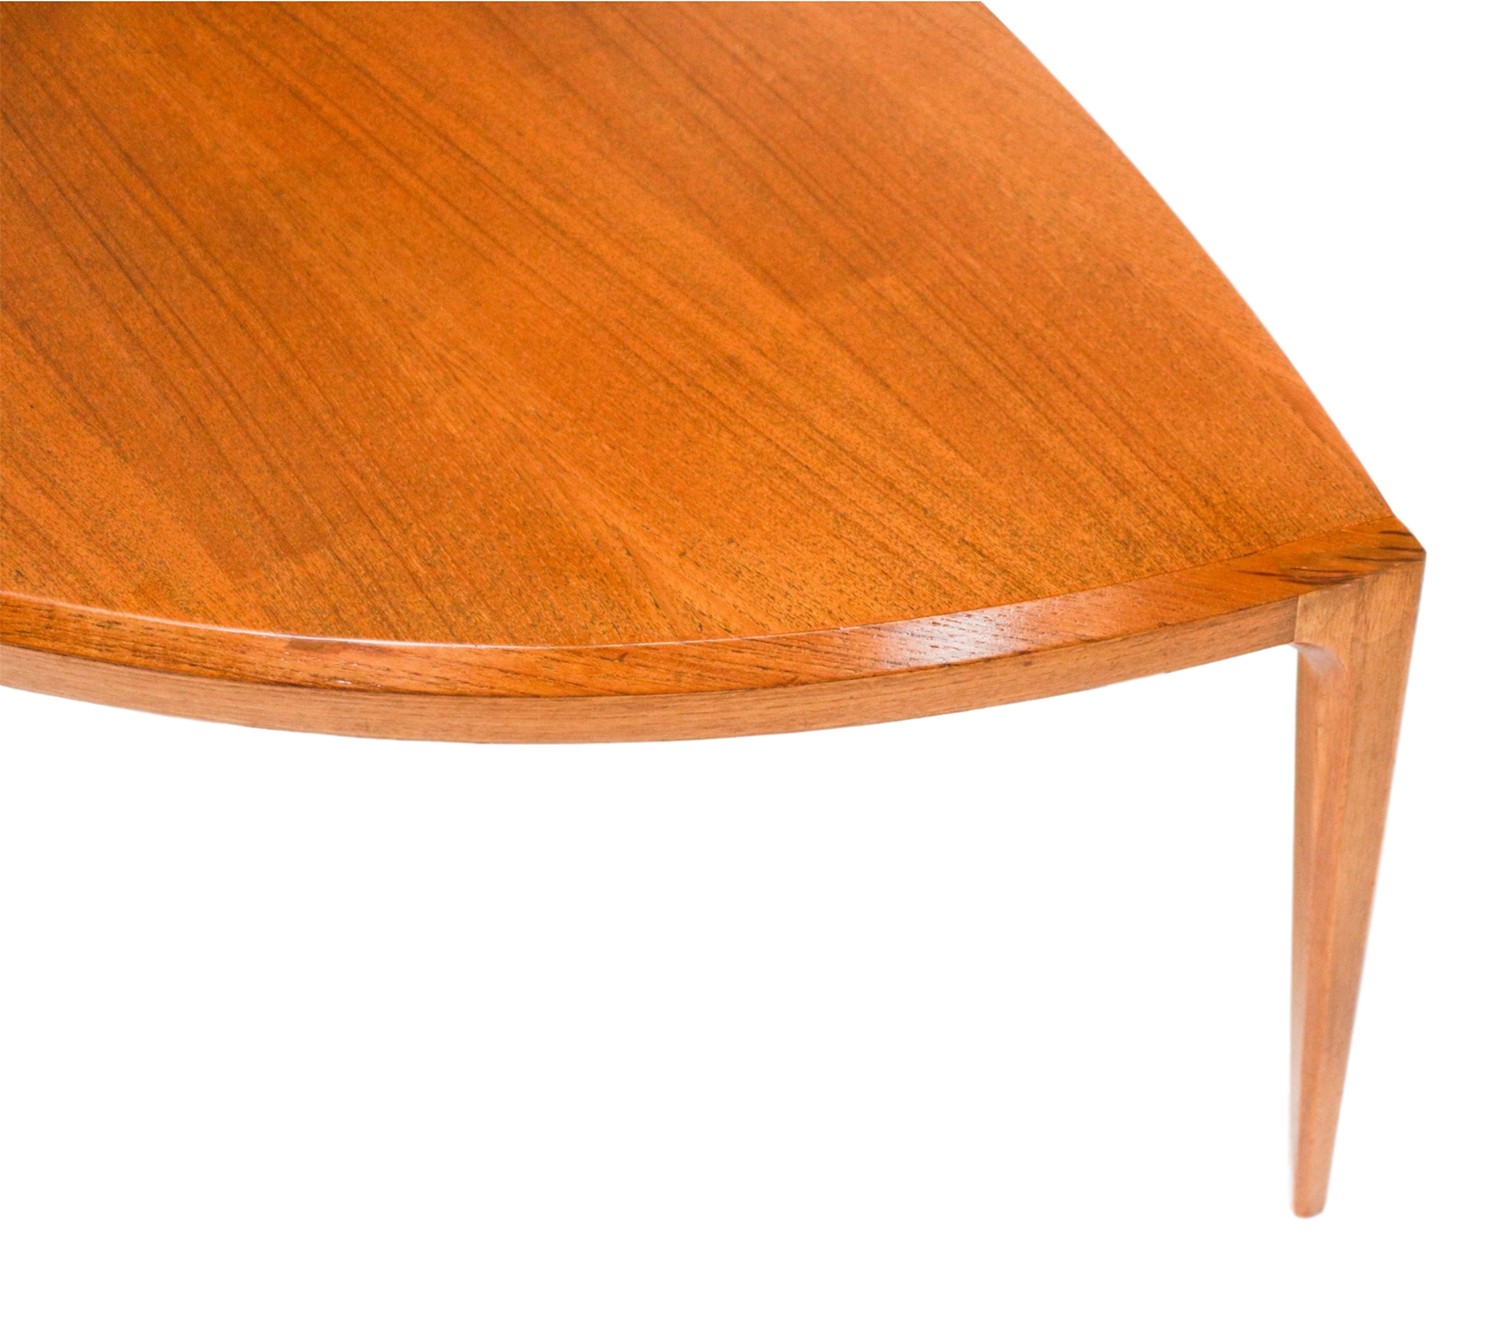 MidCentury Danish Johannes Andersen Teak Coffee Table